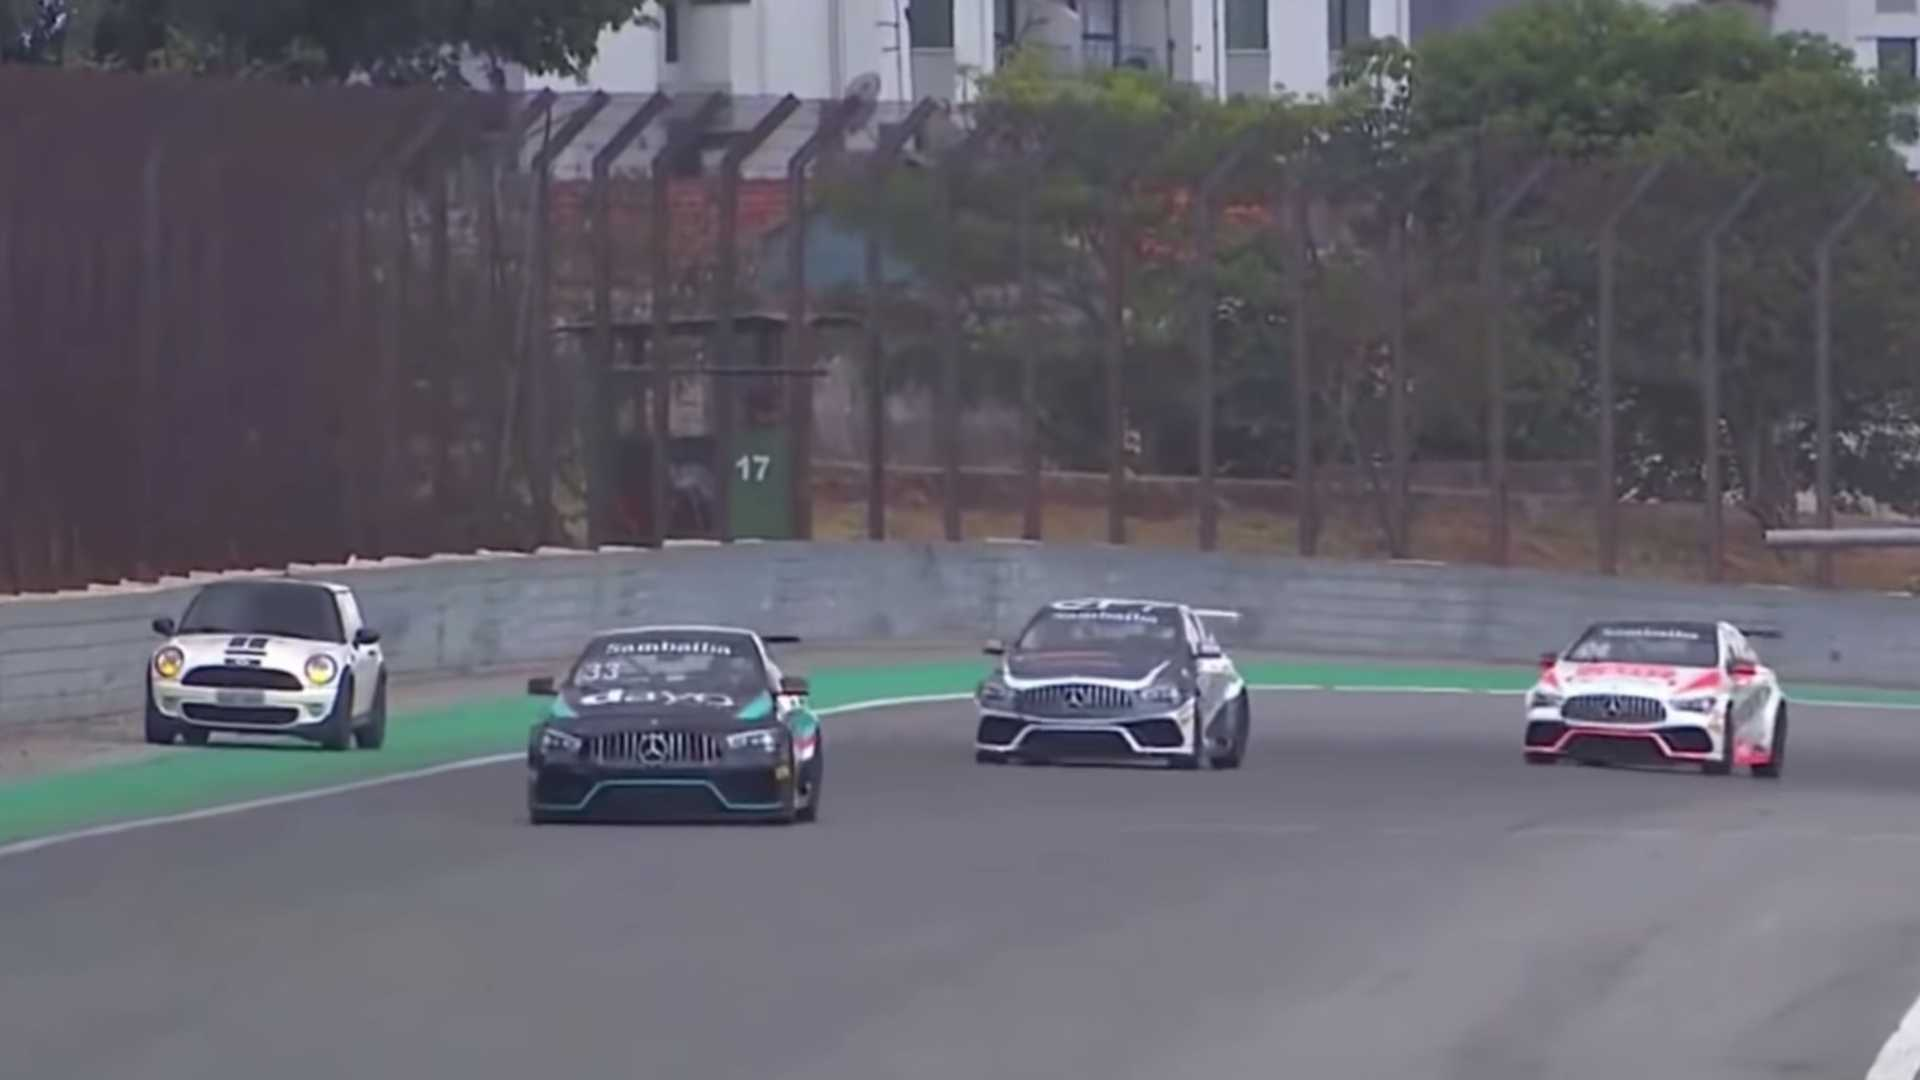 Mini Driver Accidently Enters Interlagos Circuit During Mercedes Race - Motor1